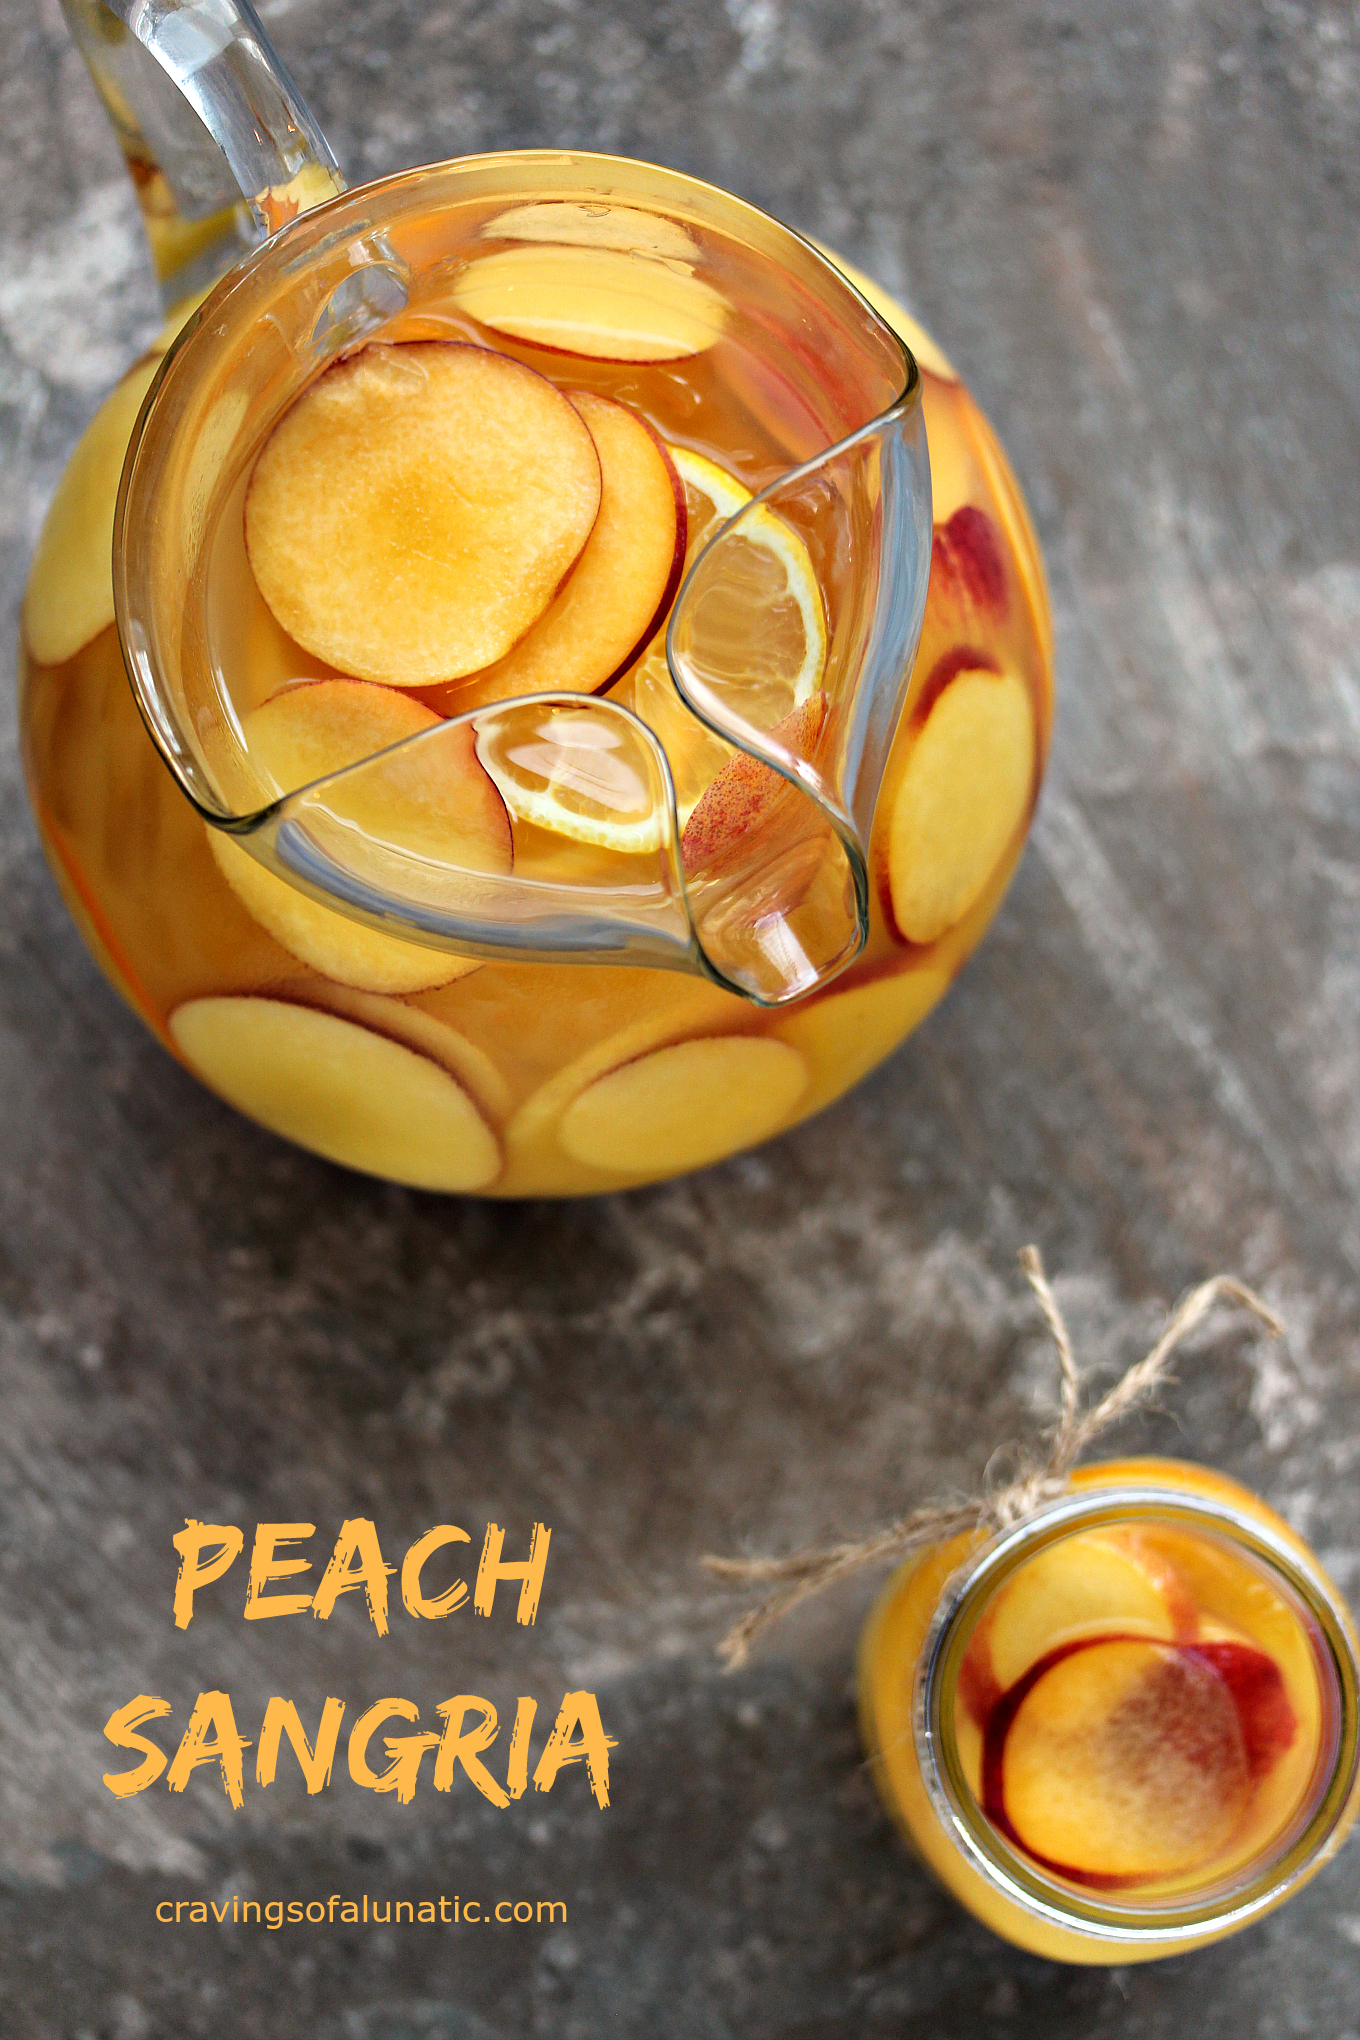 Peach Sangria from cravingsofalunatic.com. This easy recipe for Peach Sangria is sure to be a hit with your family and friends. Celebrate in style with this tasty mix of peach, orange, lemon and Sauvignon Blanc. #peach #sangria #cocktai